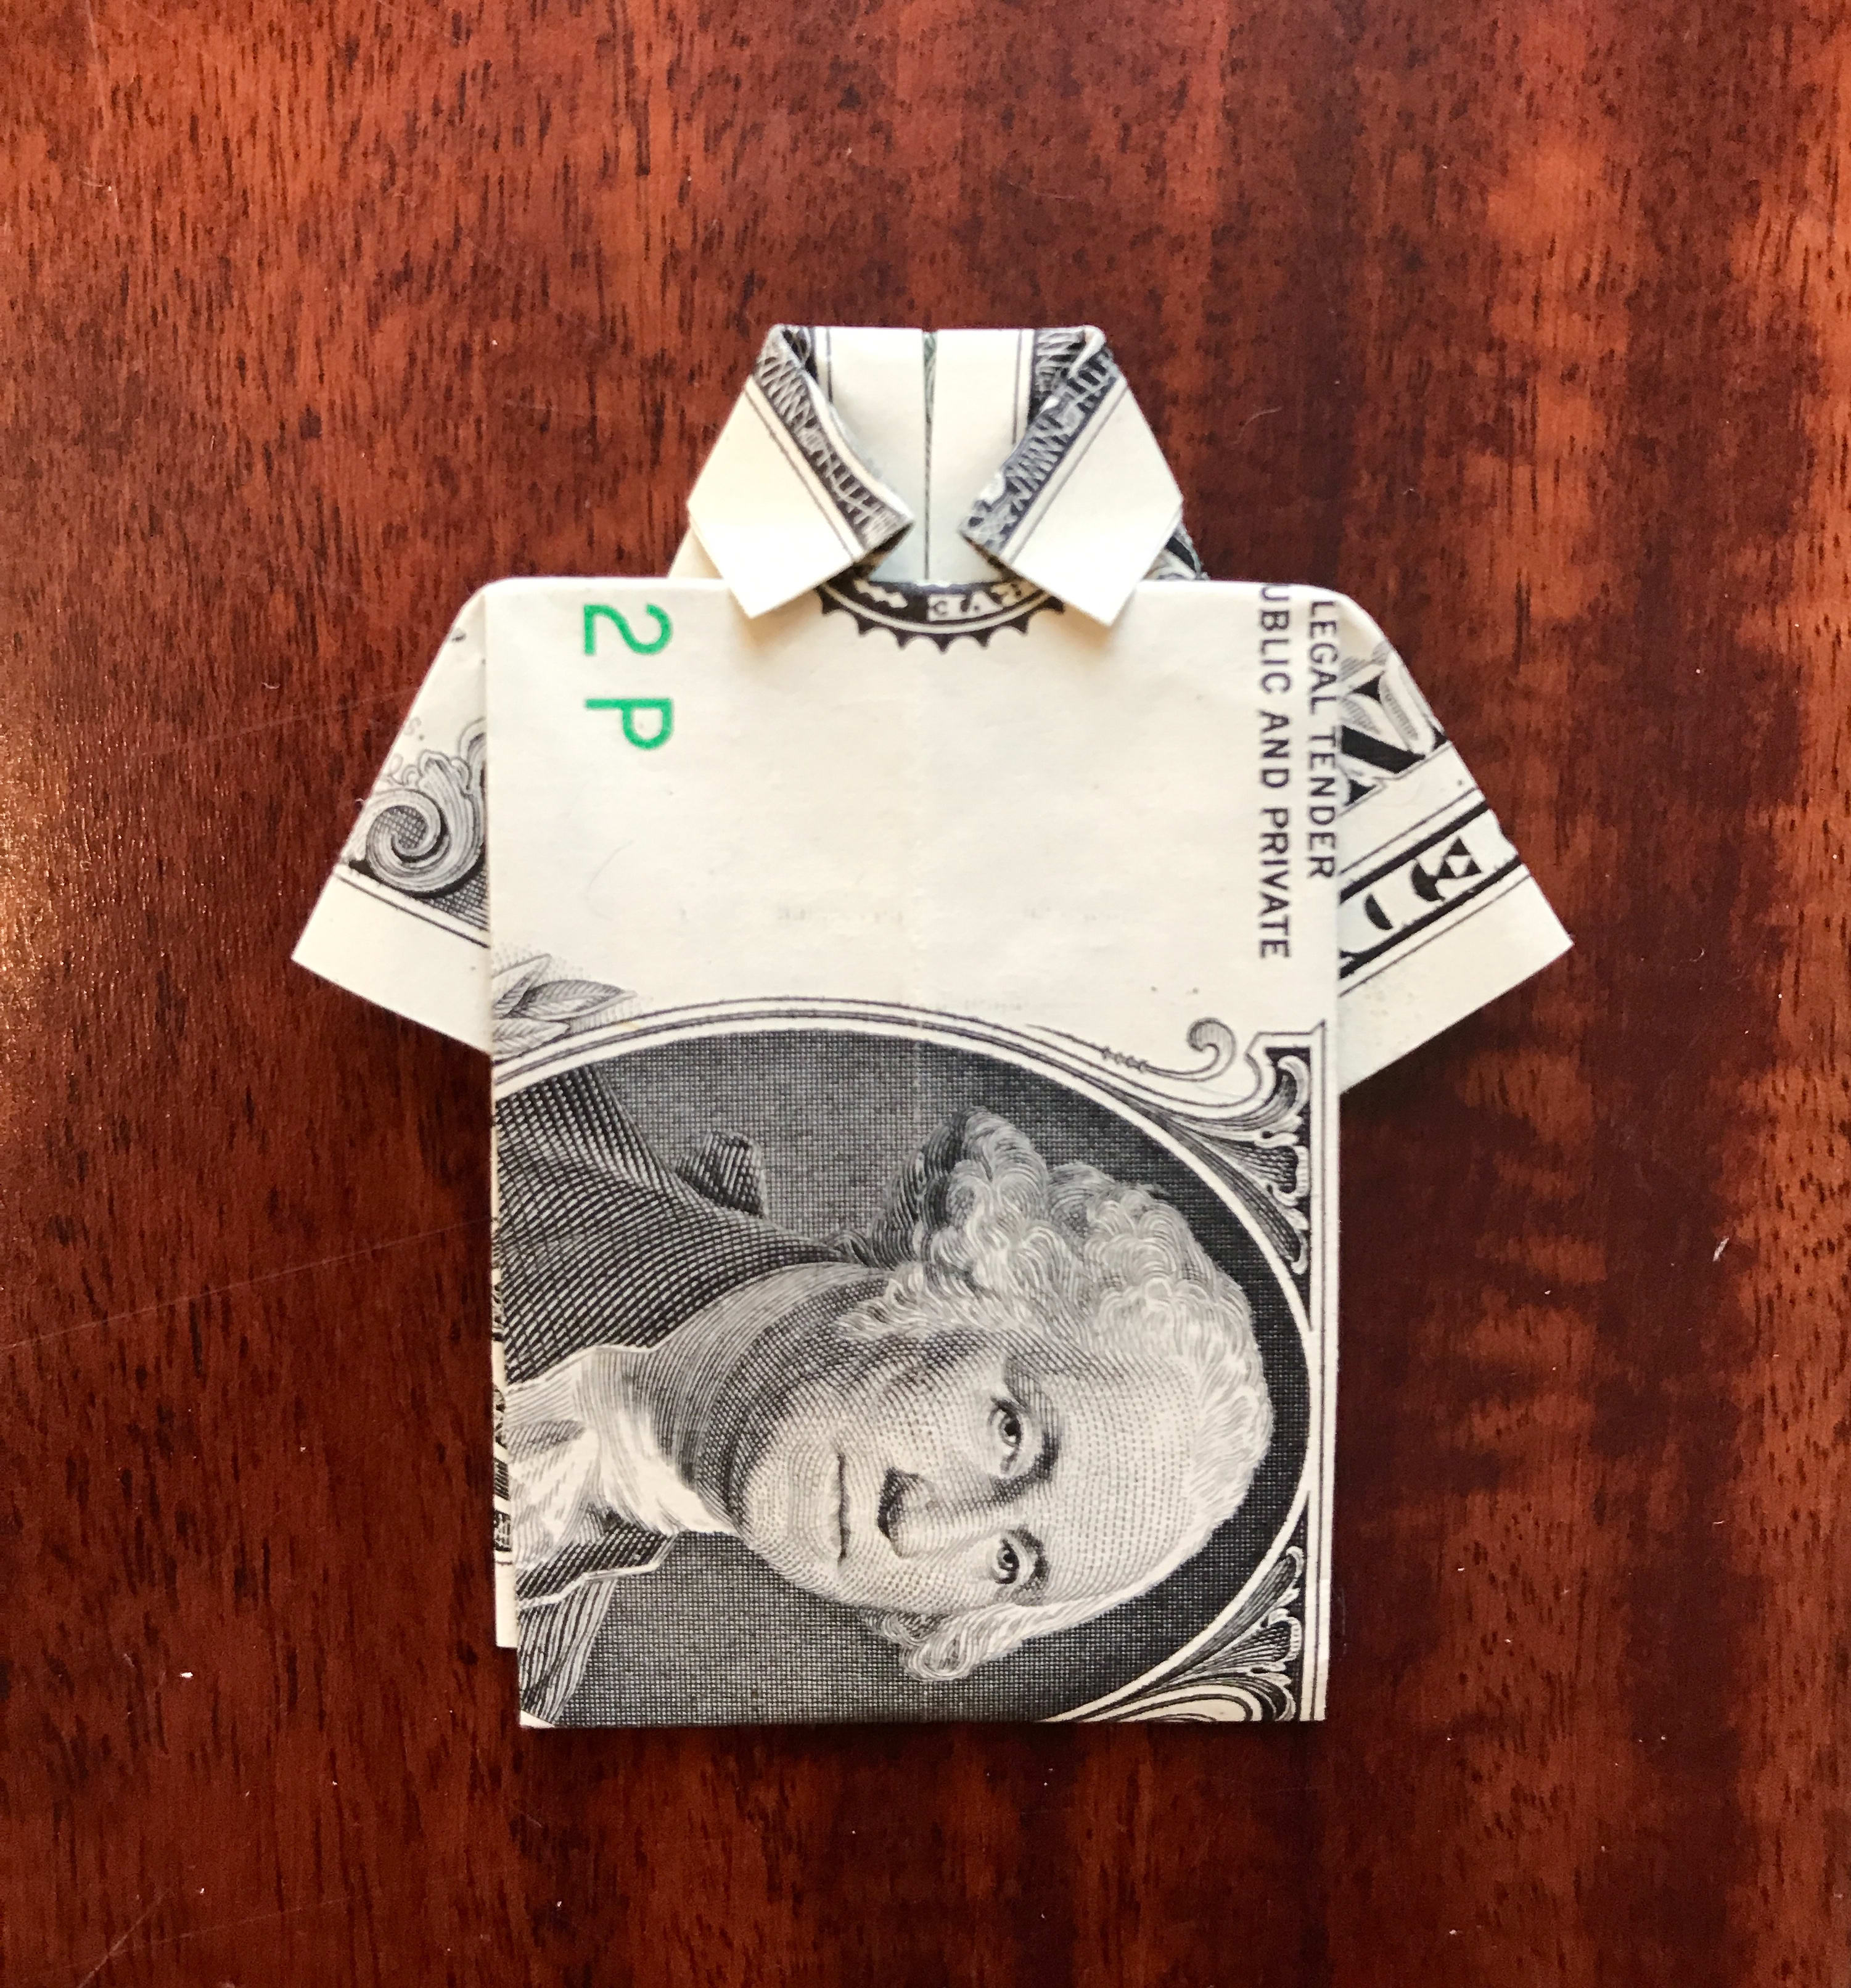 Dollar Bill Shirt And Tie Origami Instructions | Polo T-Shirts ... | 3224x3002